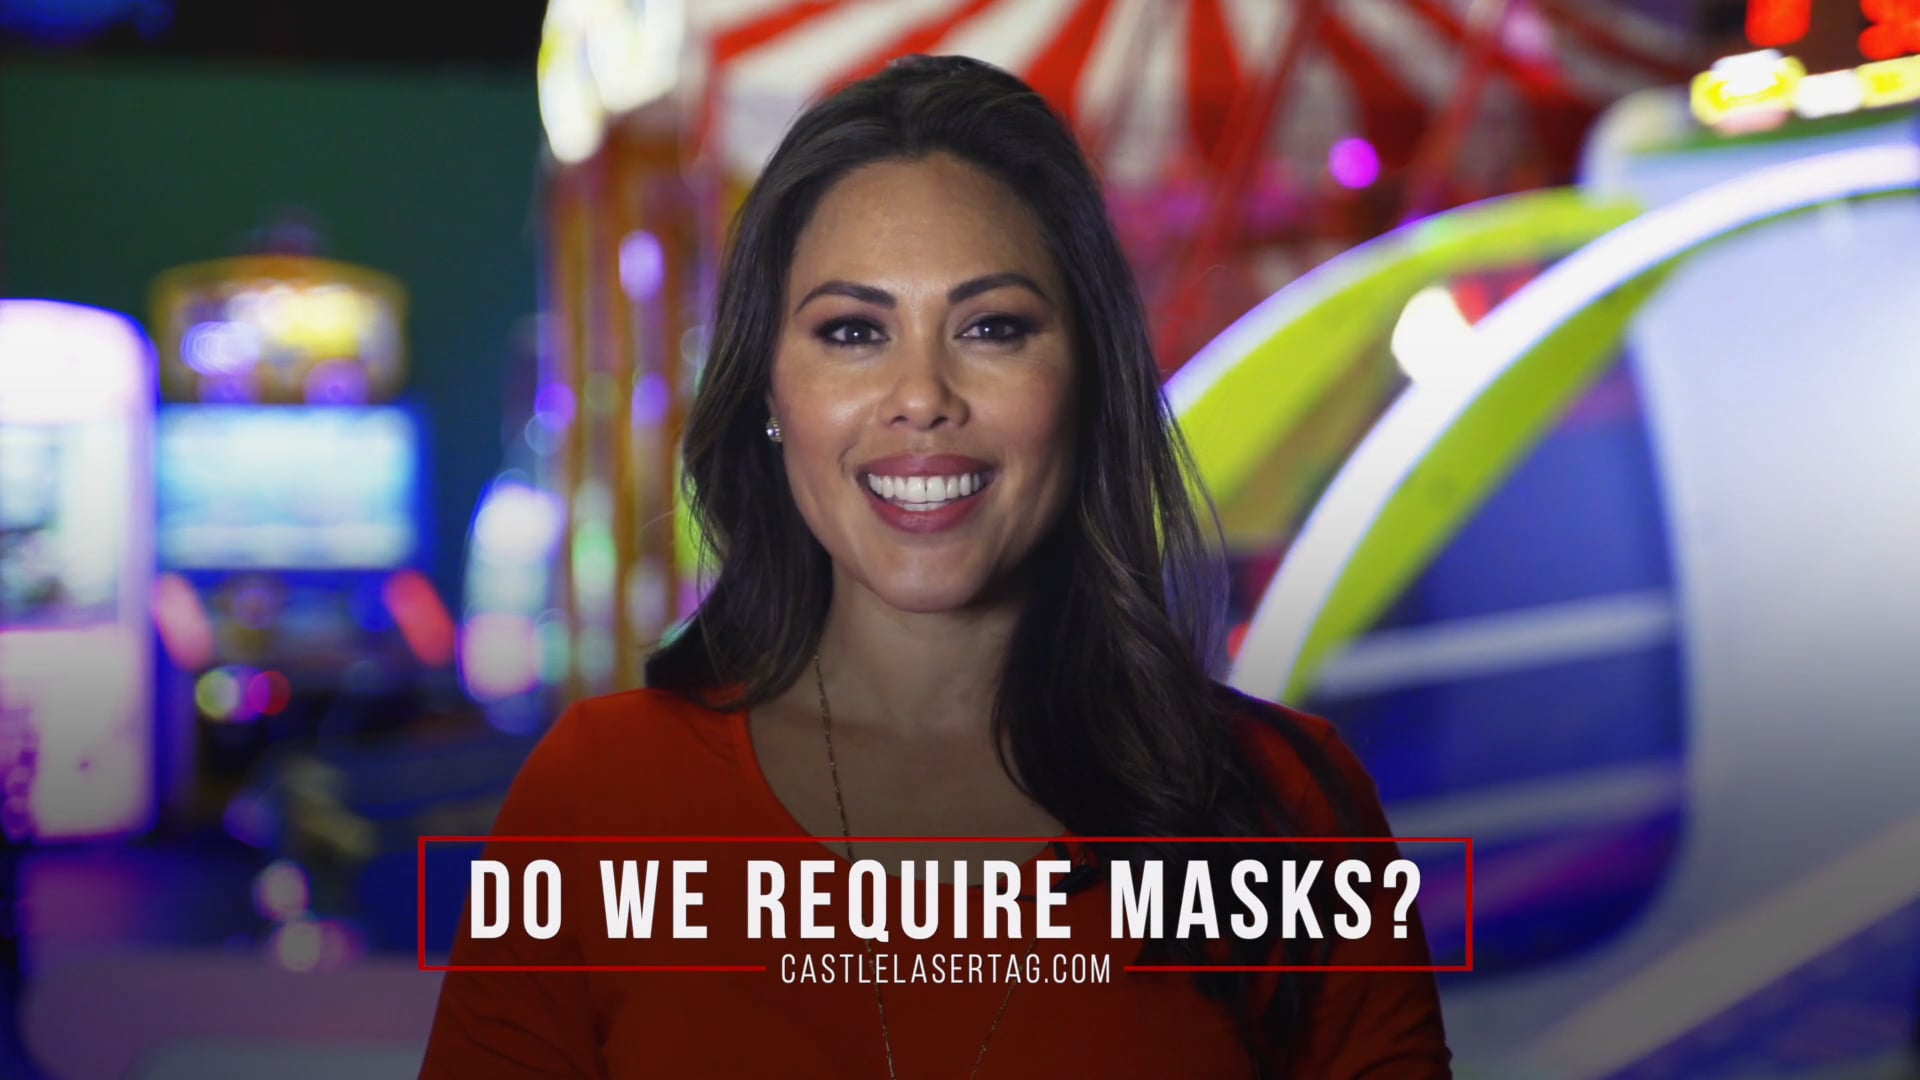 Do we require masks